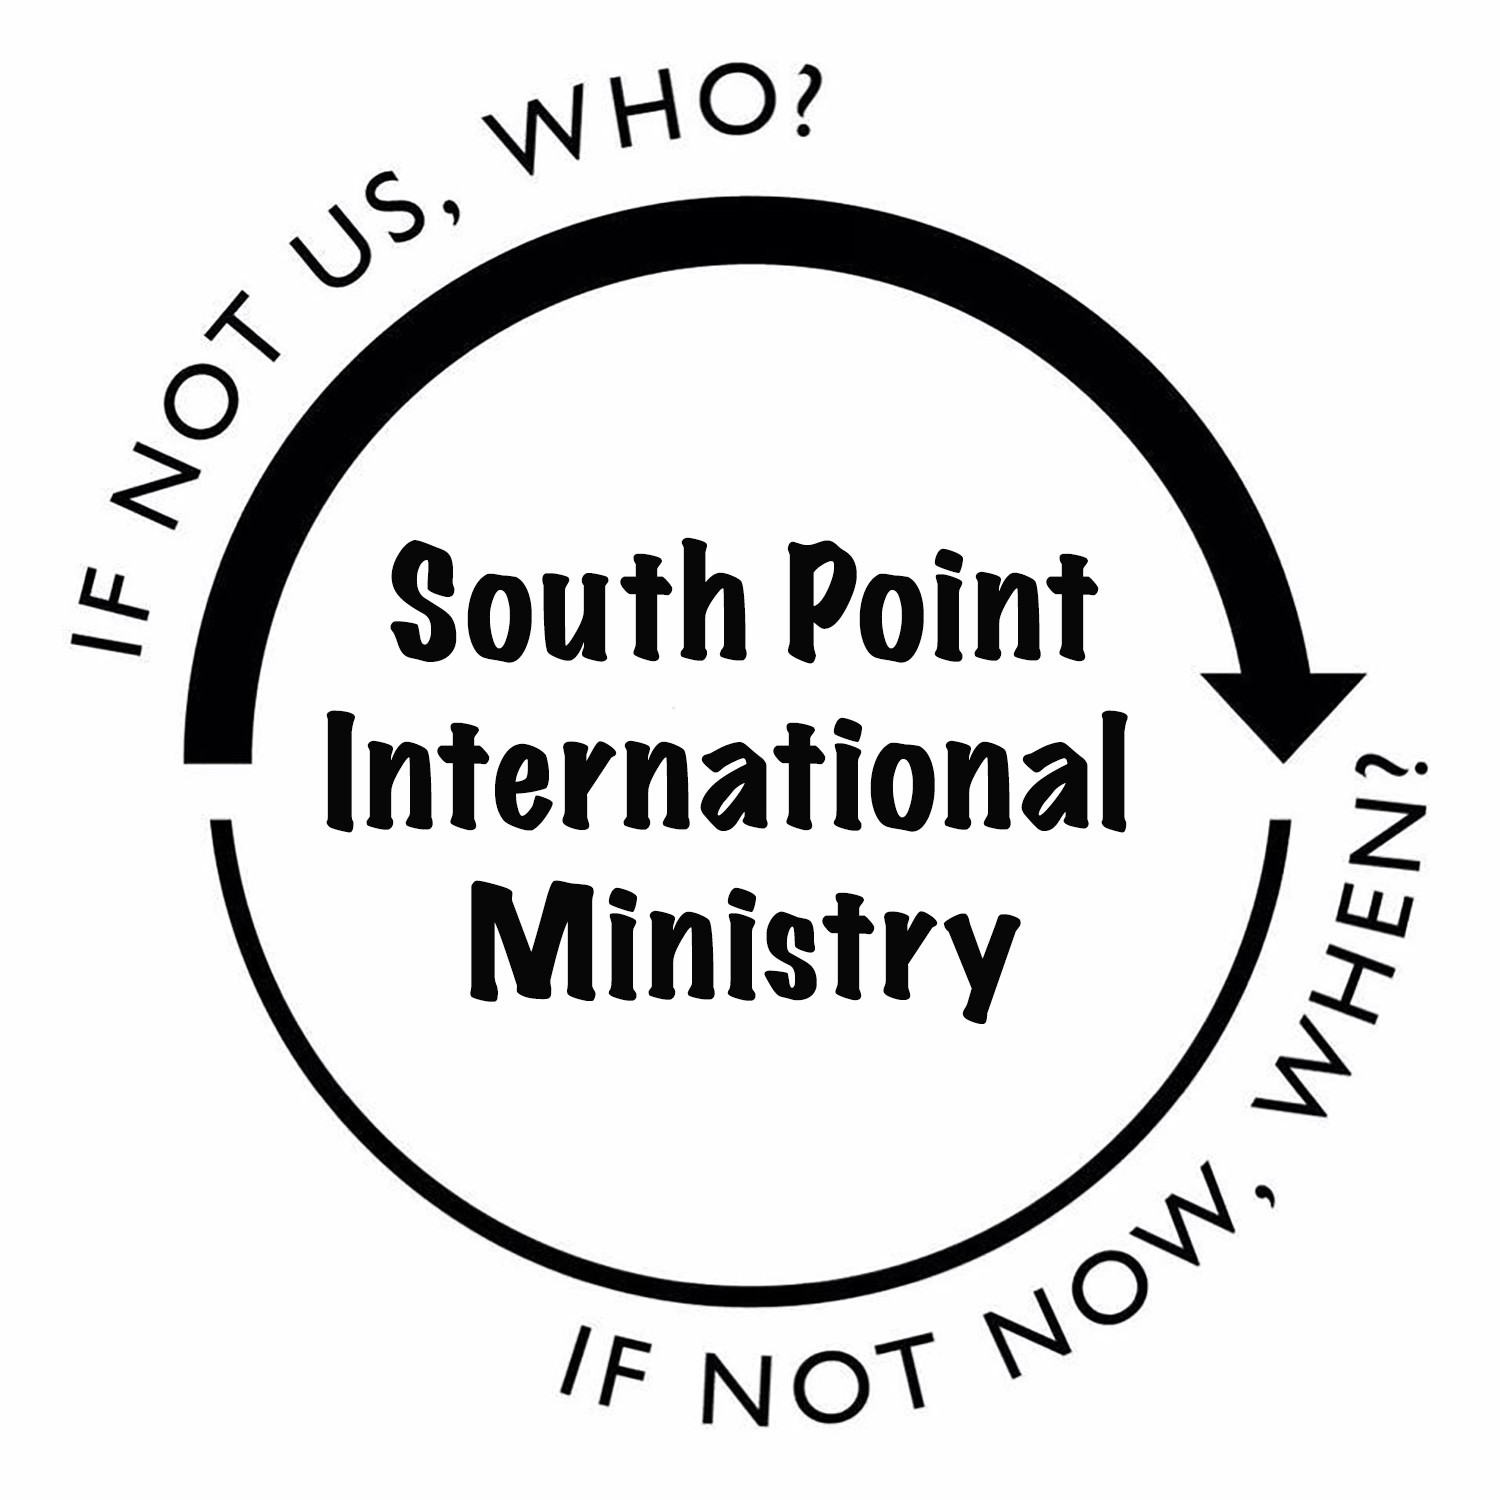 South Point International Ministry